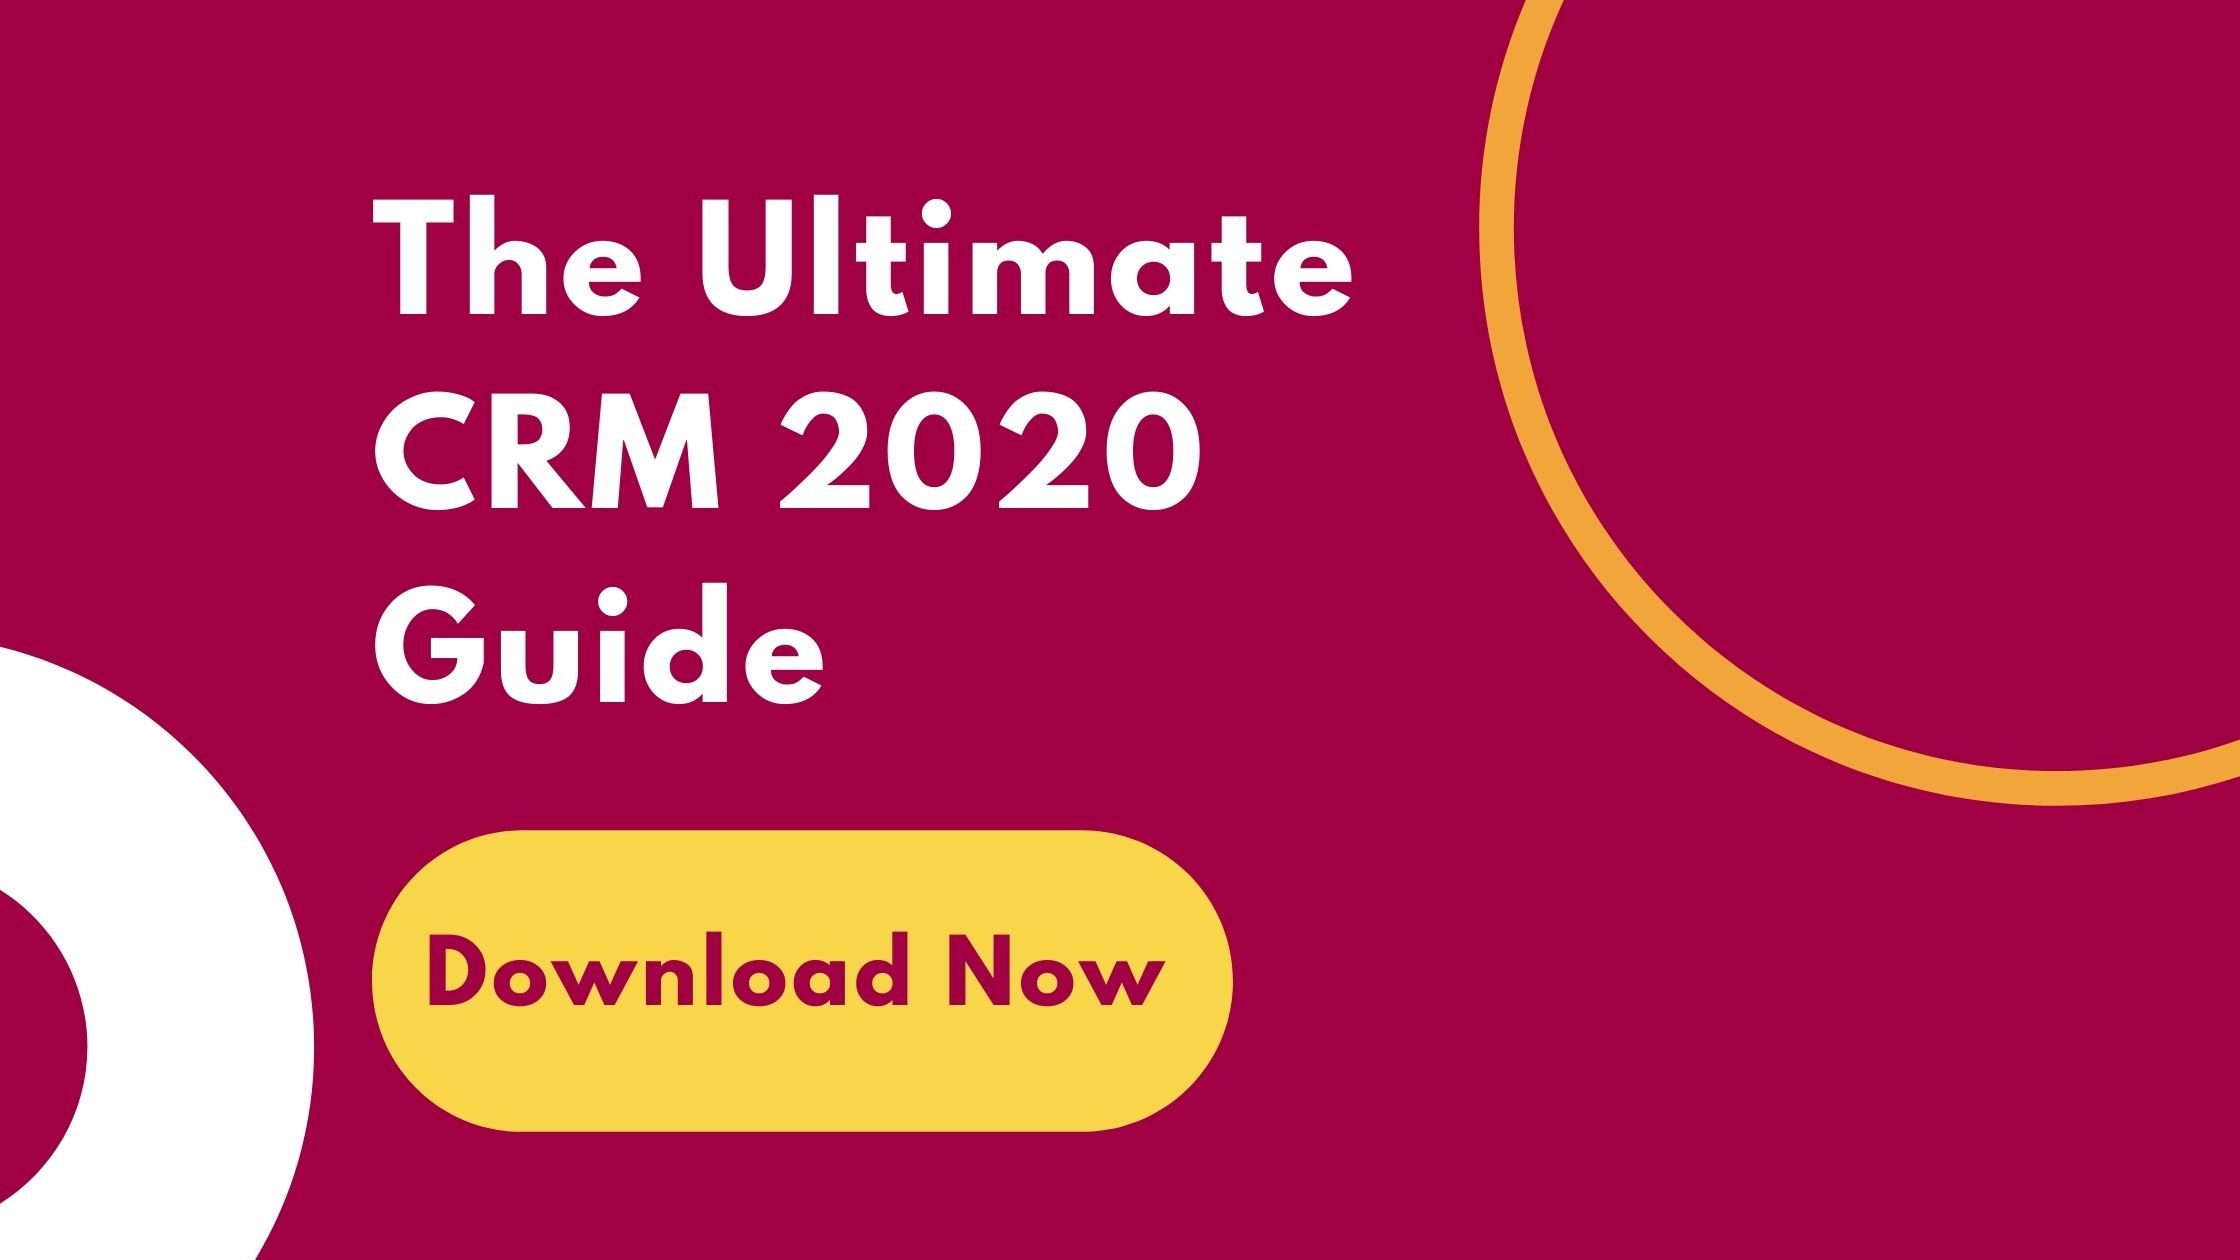 CRM 2020 Guide